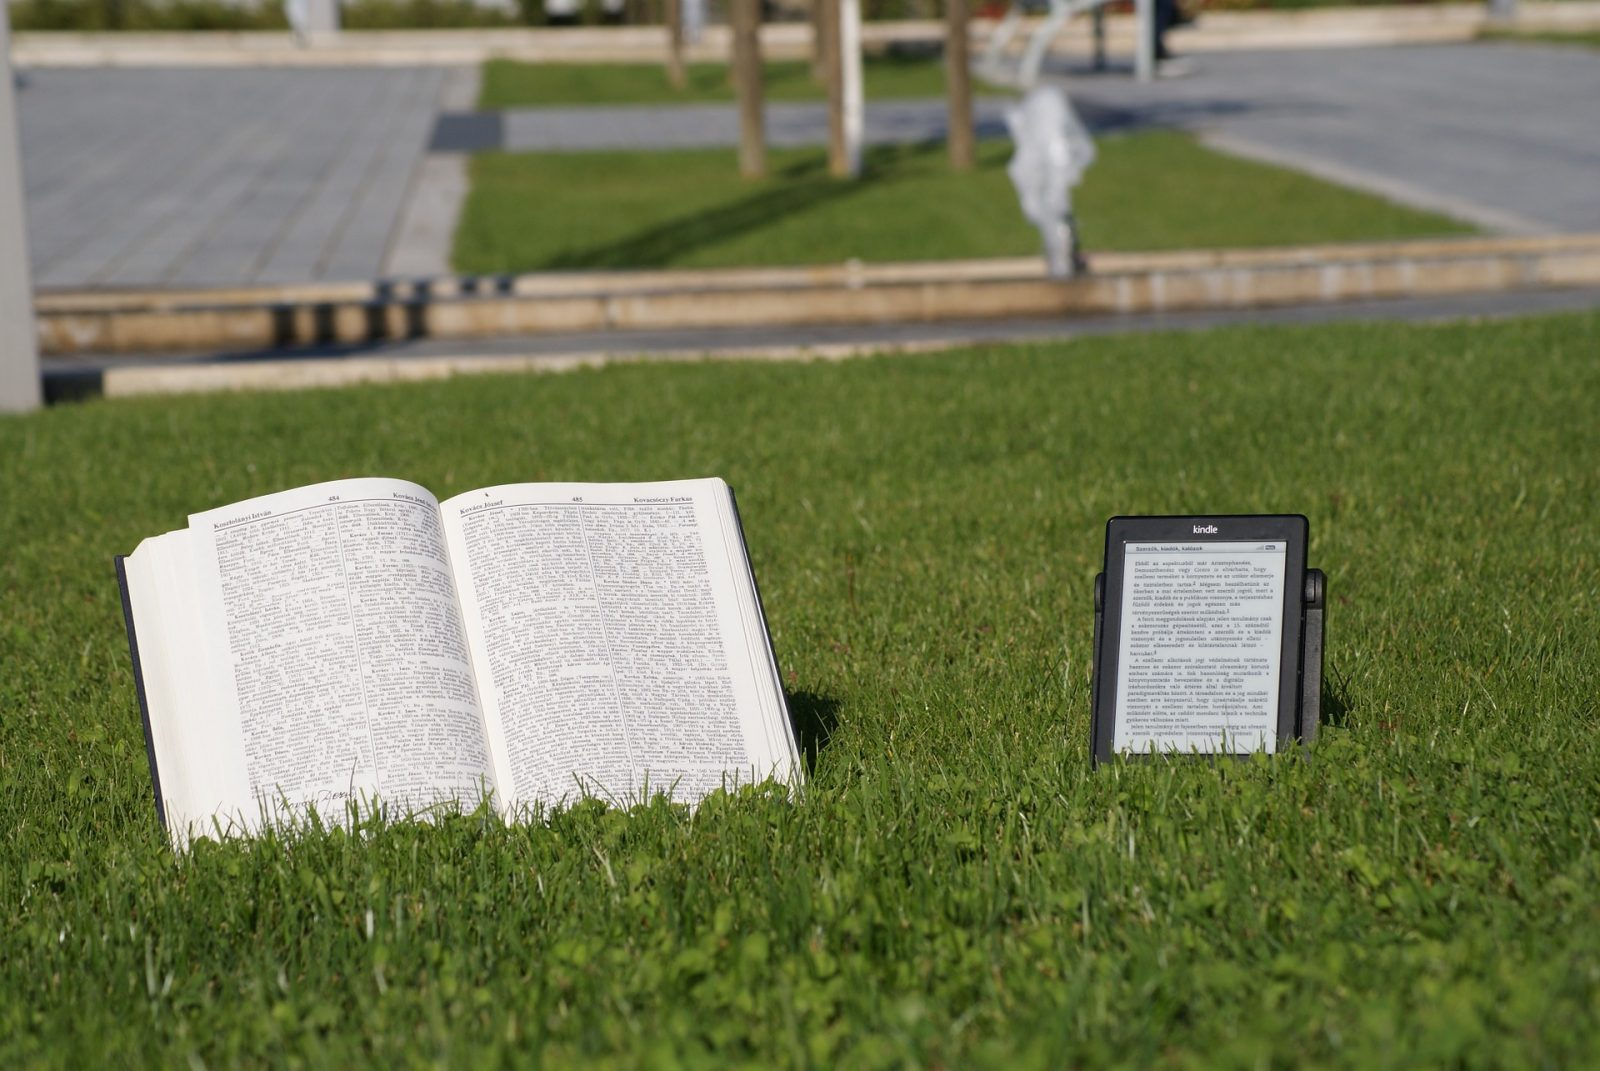 E-book and paper book on a grass